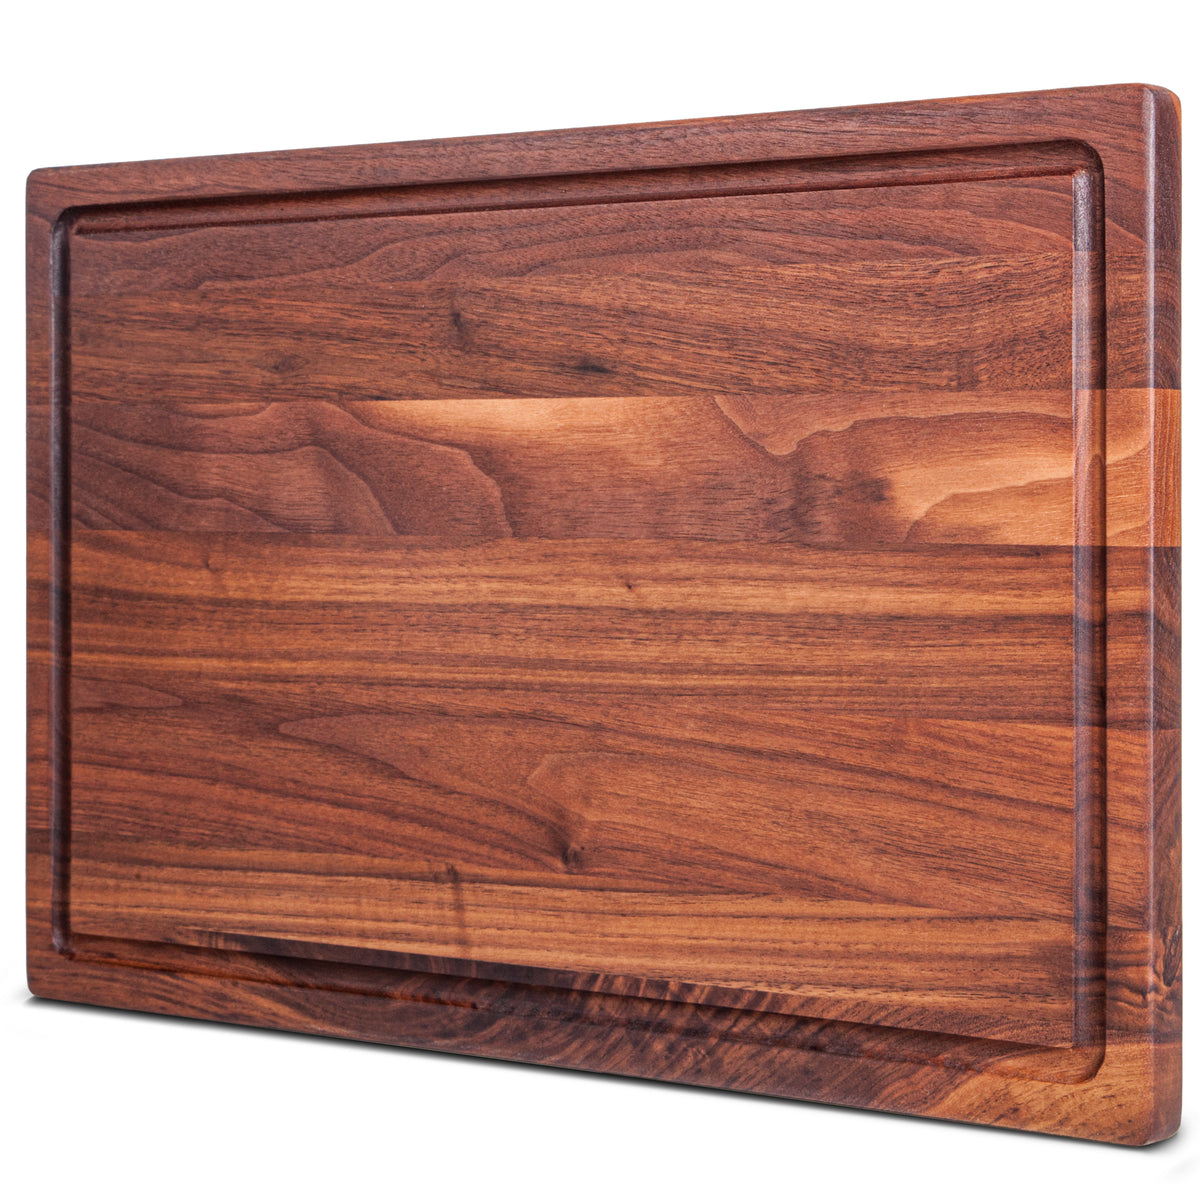 17x11x0.75'' Flat Grain Walnut Cutting Board with Juice Grooves